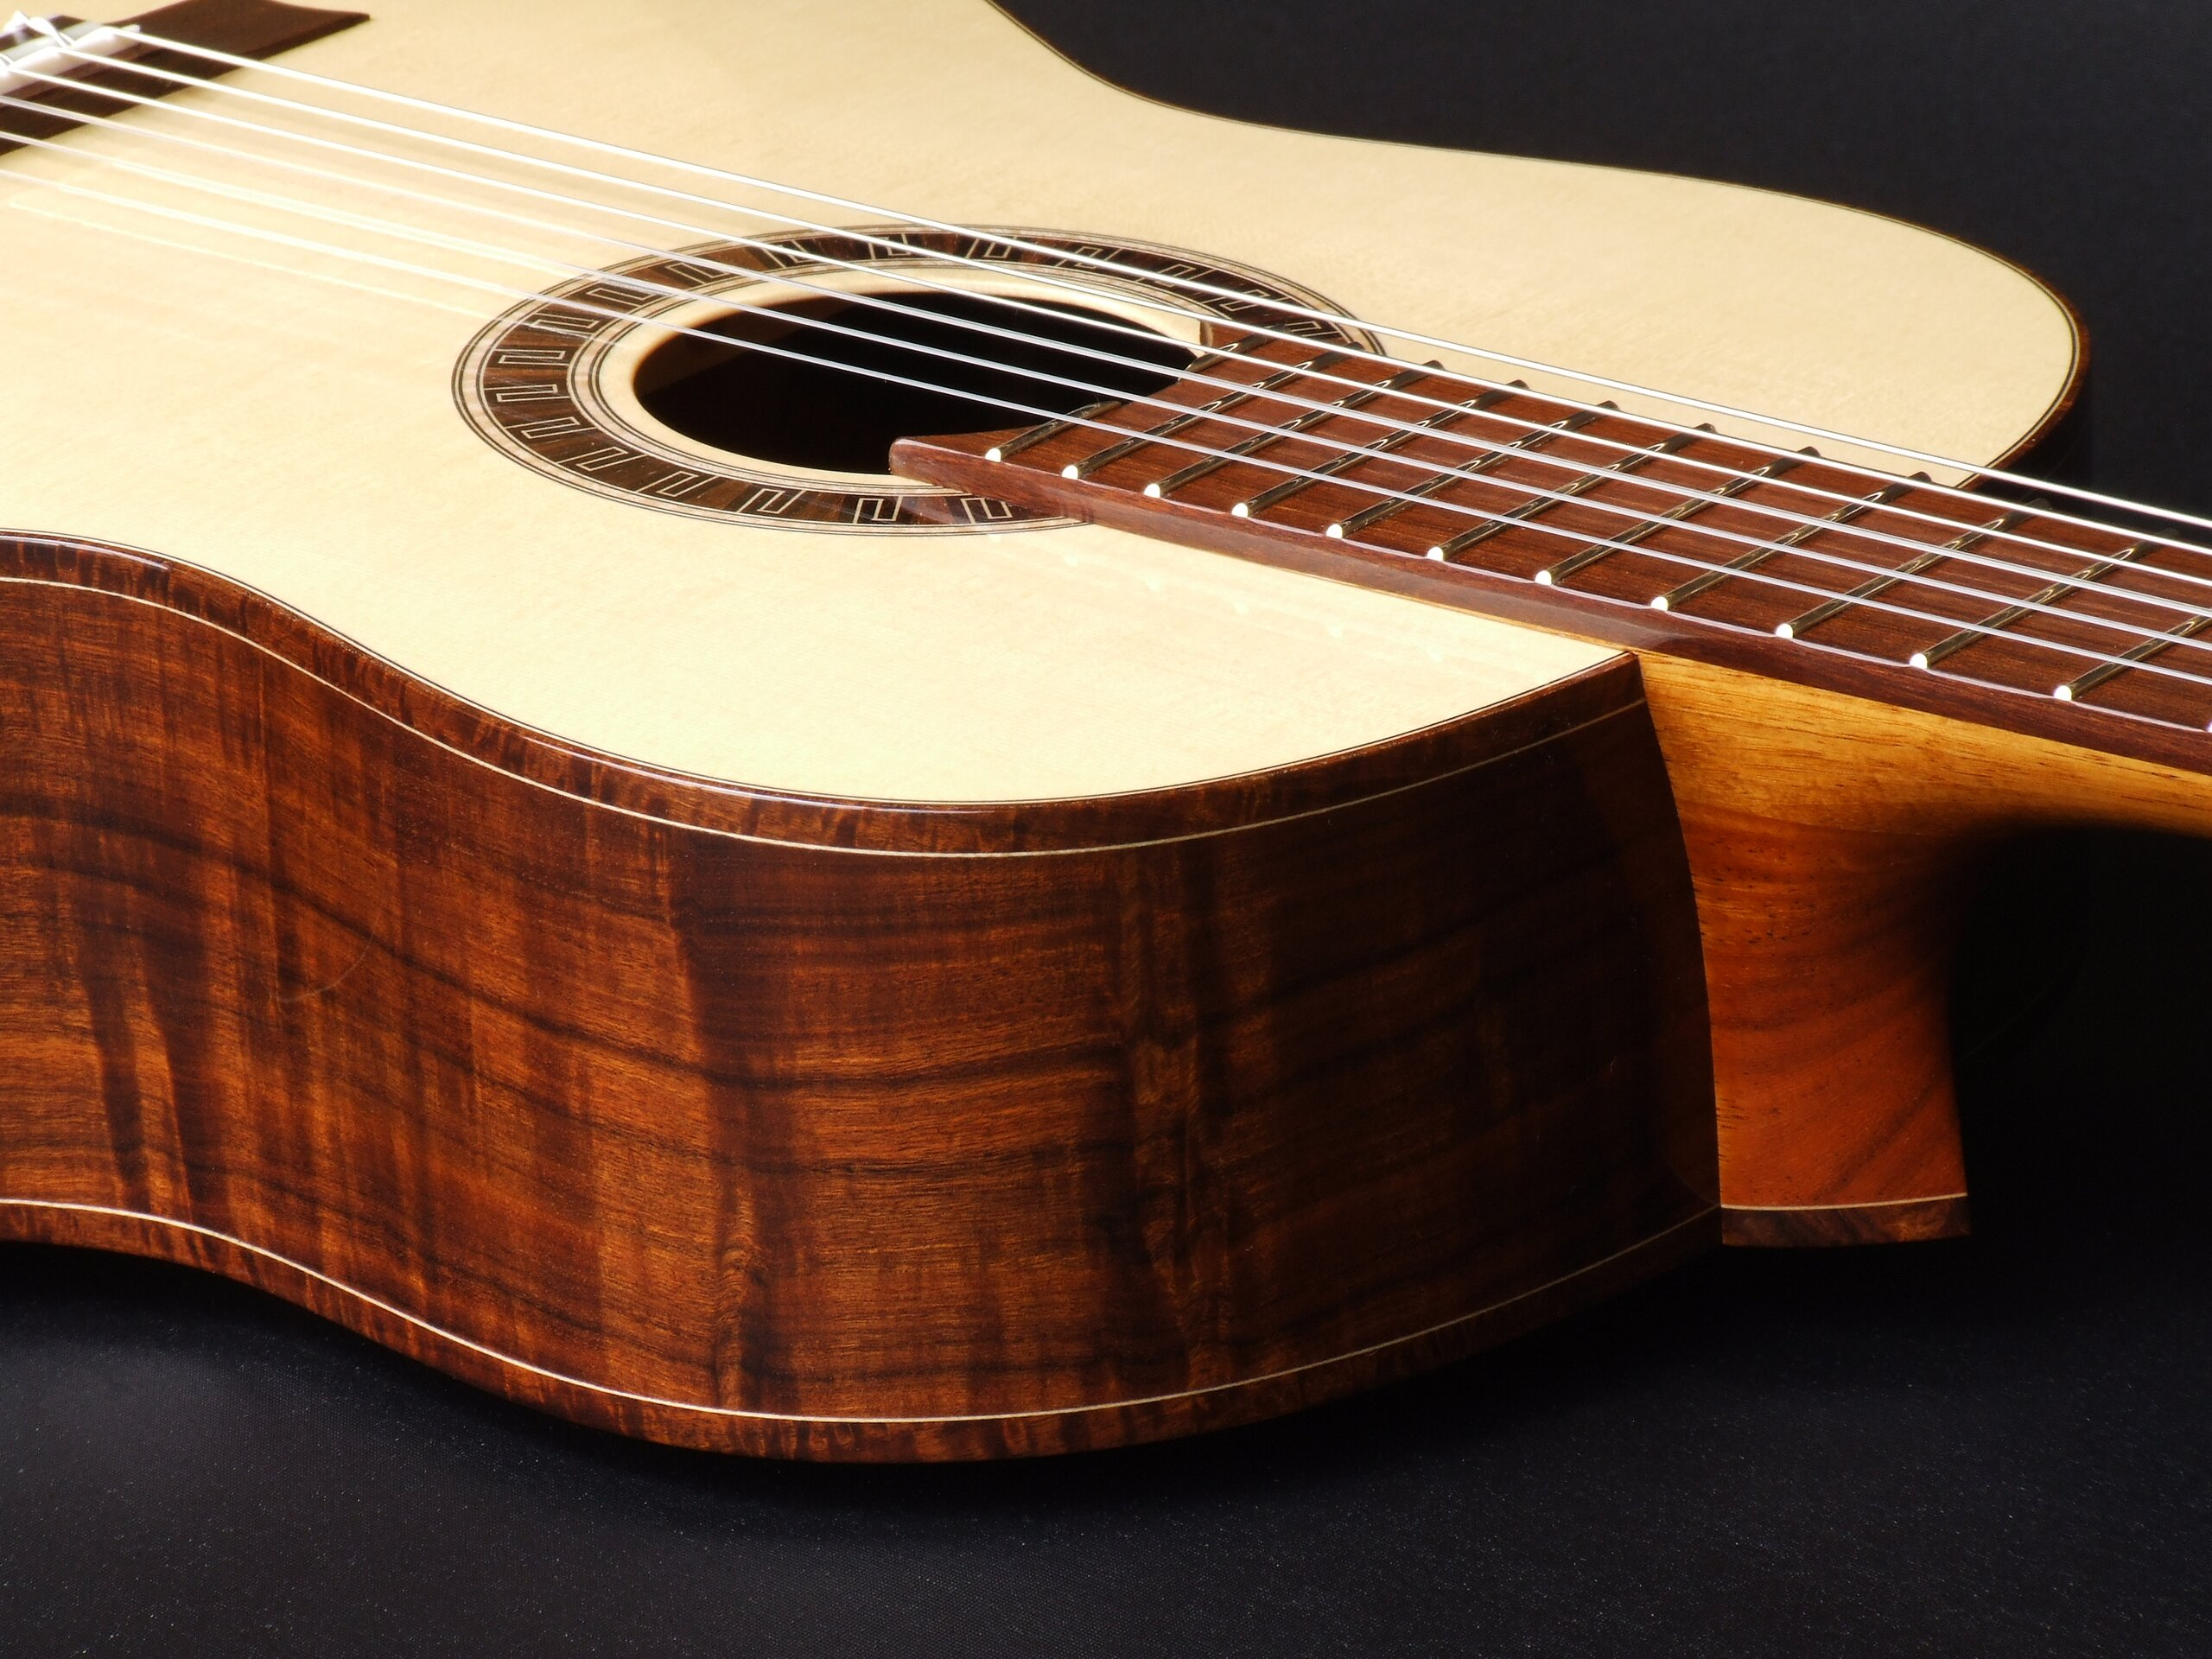 Neck joint on a gidgee bodied classical guitar by Trevor Gore